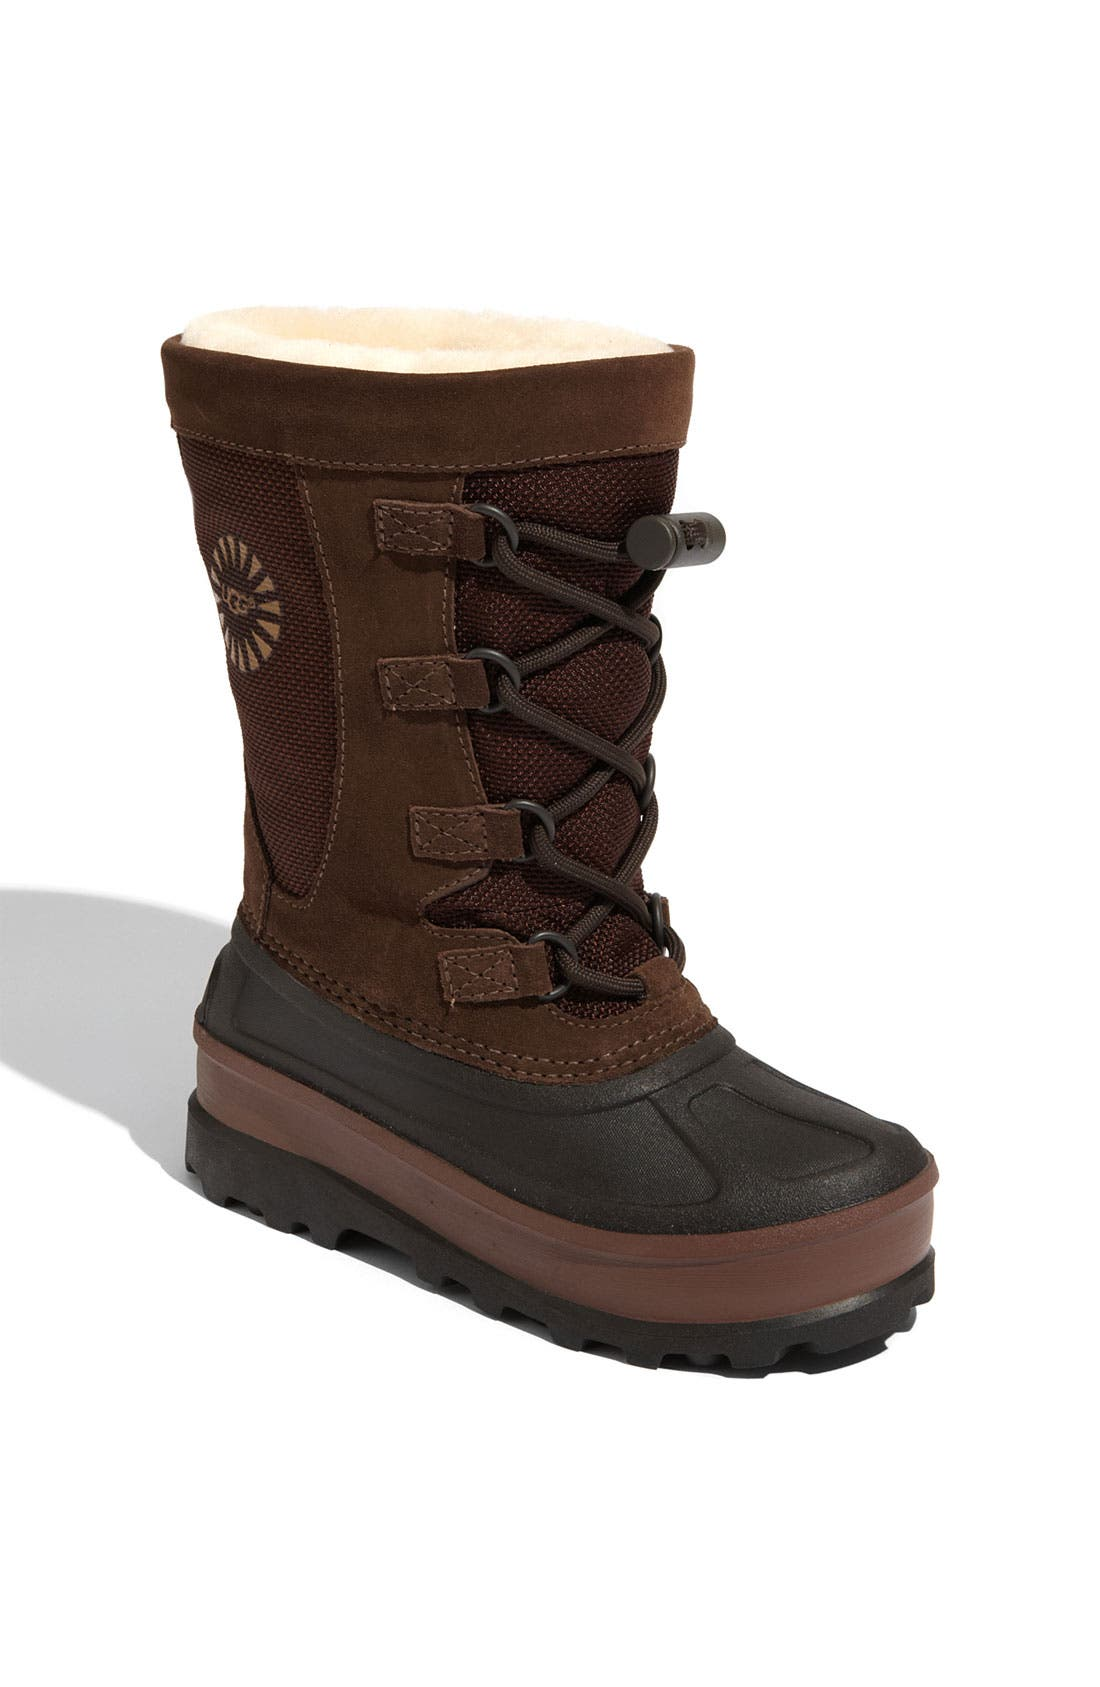 Alternate Image 1 Selected - UGG® Australia 'Bobbey' Boot (Little Kid & Big Kid)